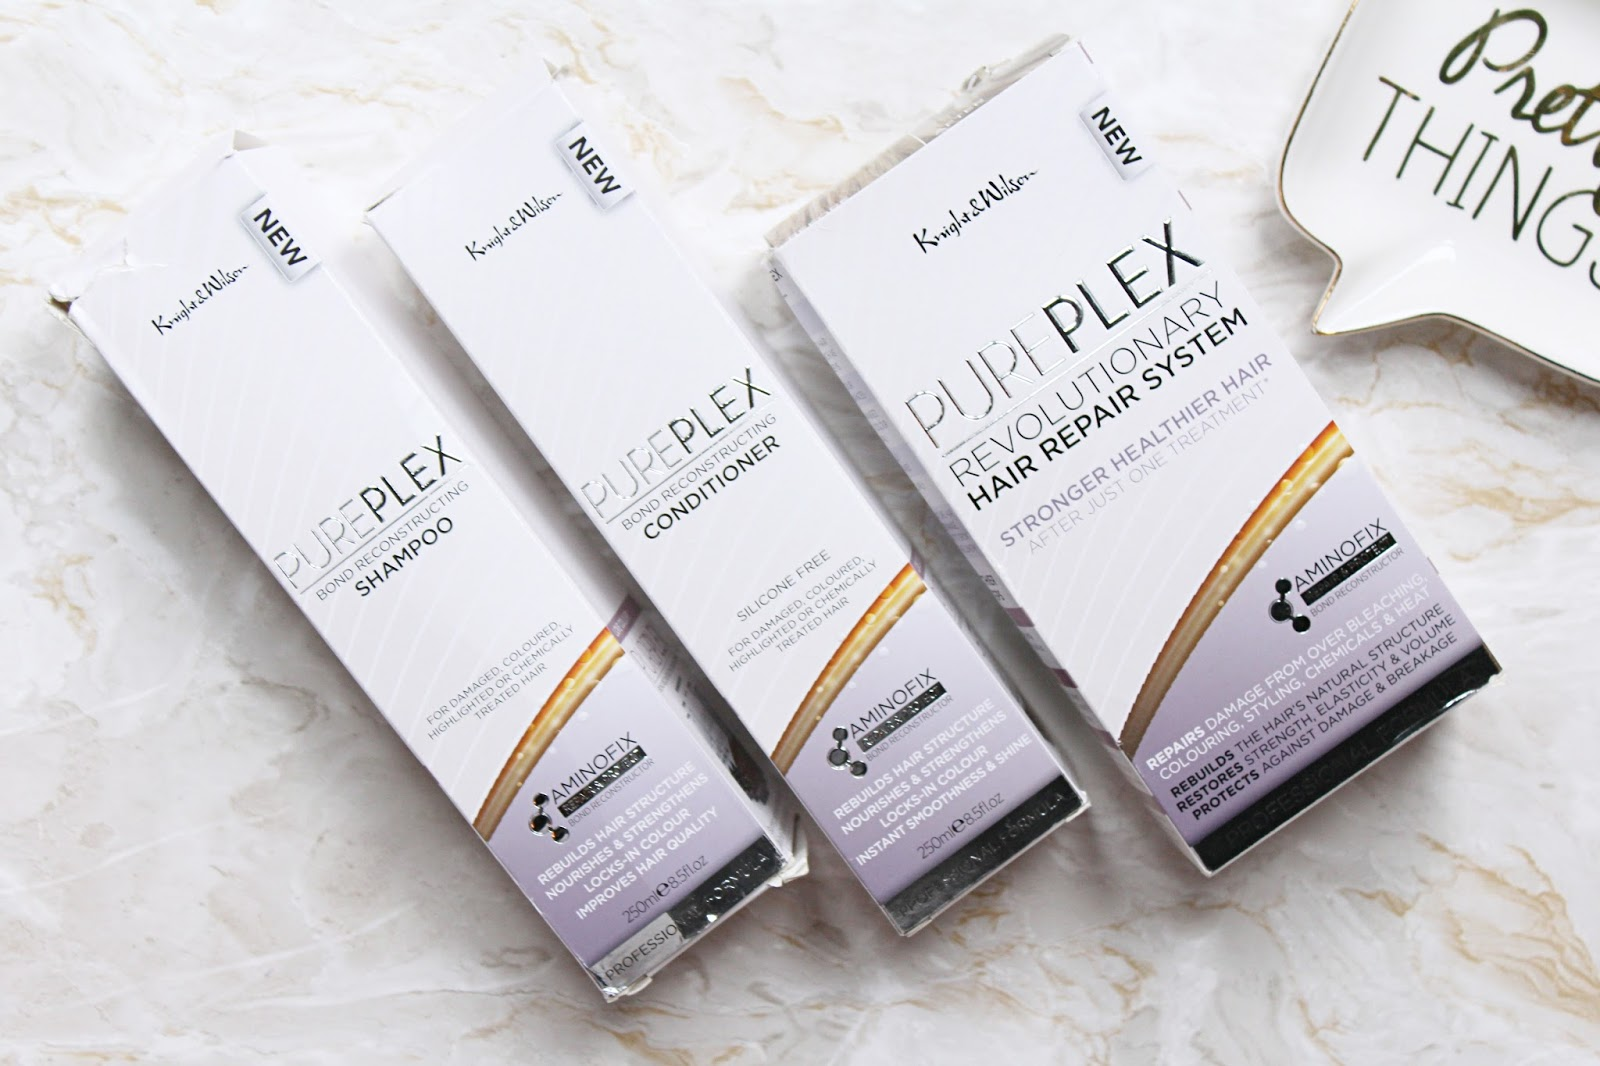 Knight & Wilson PurePlex Revolutionary Hair Repair System